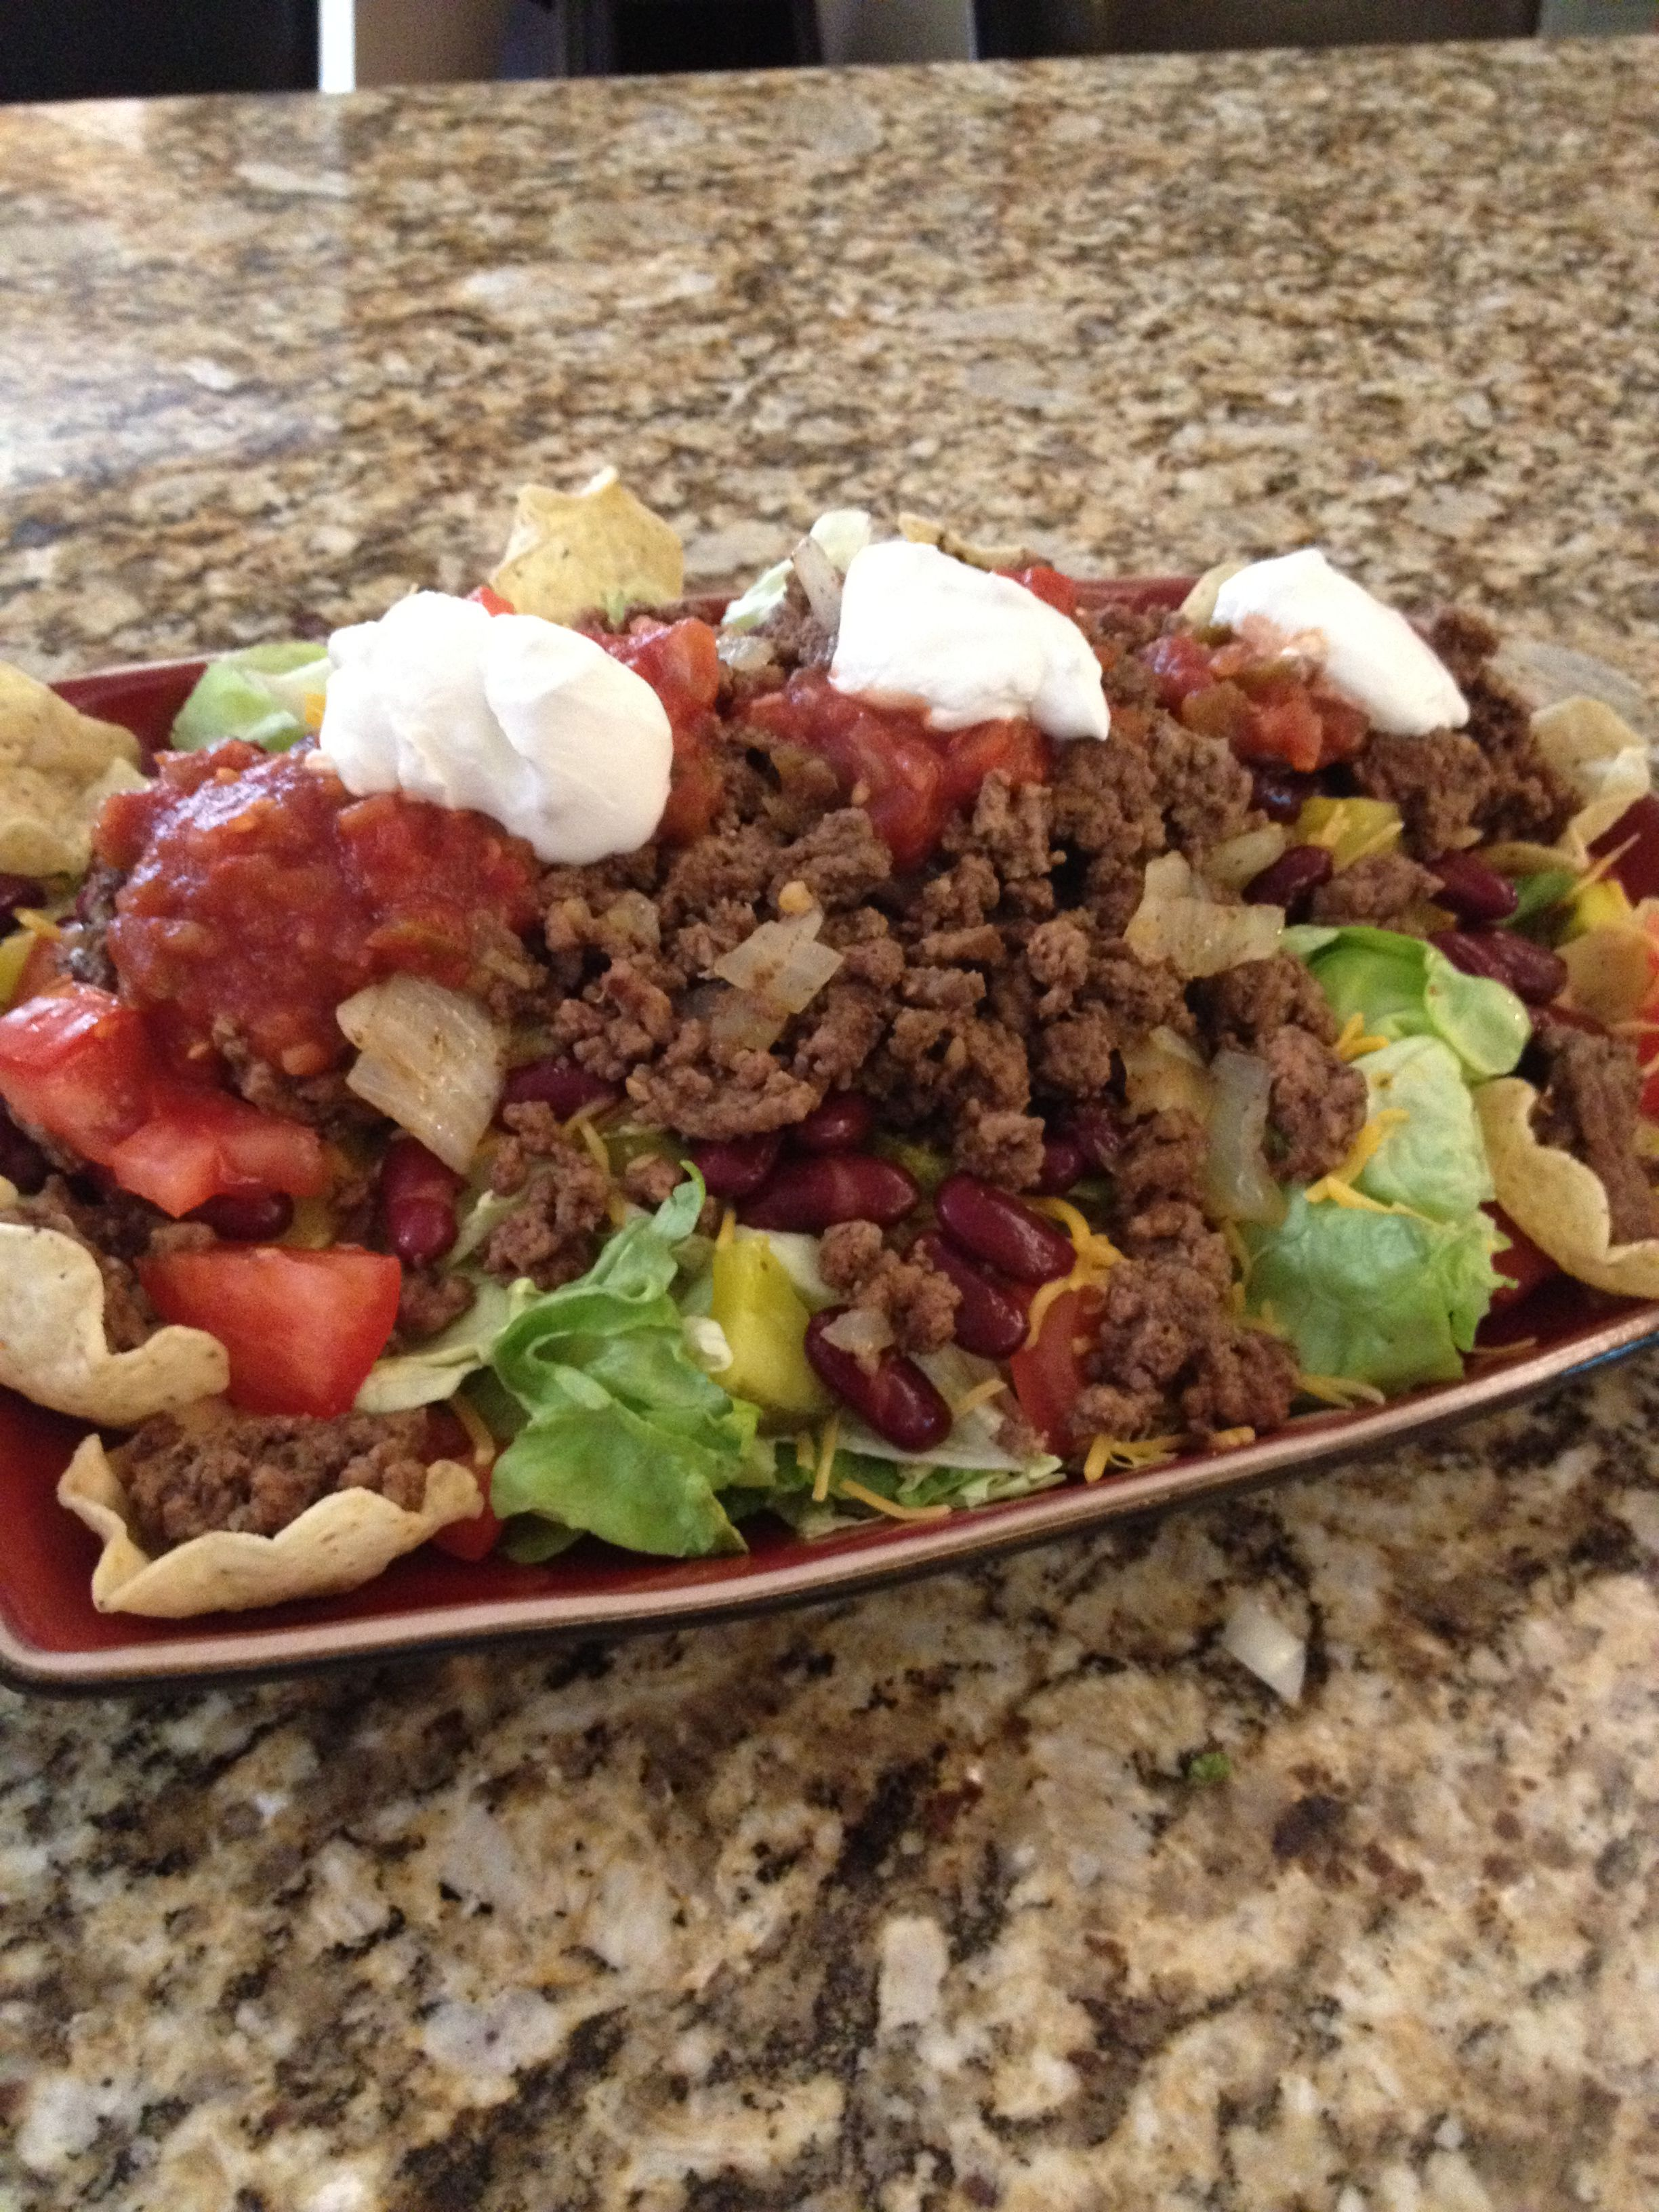 6 layer taco salad - today's lunch!